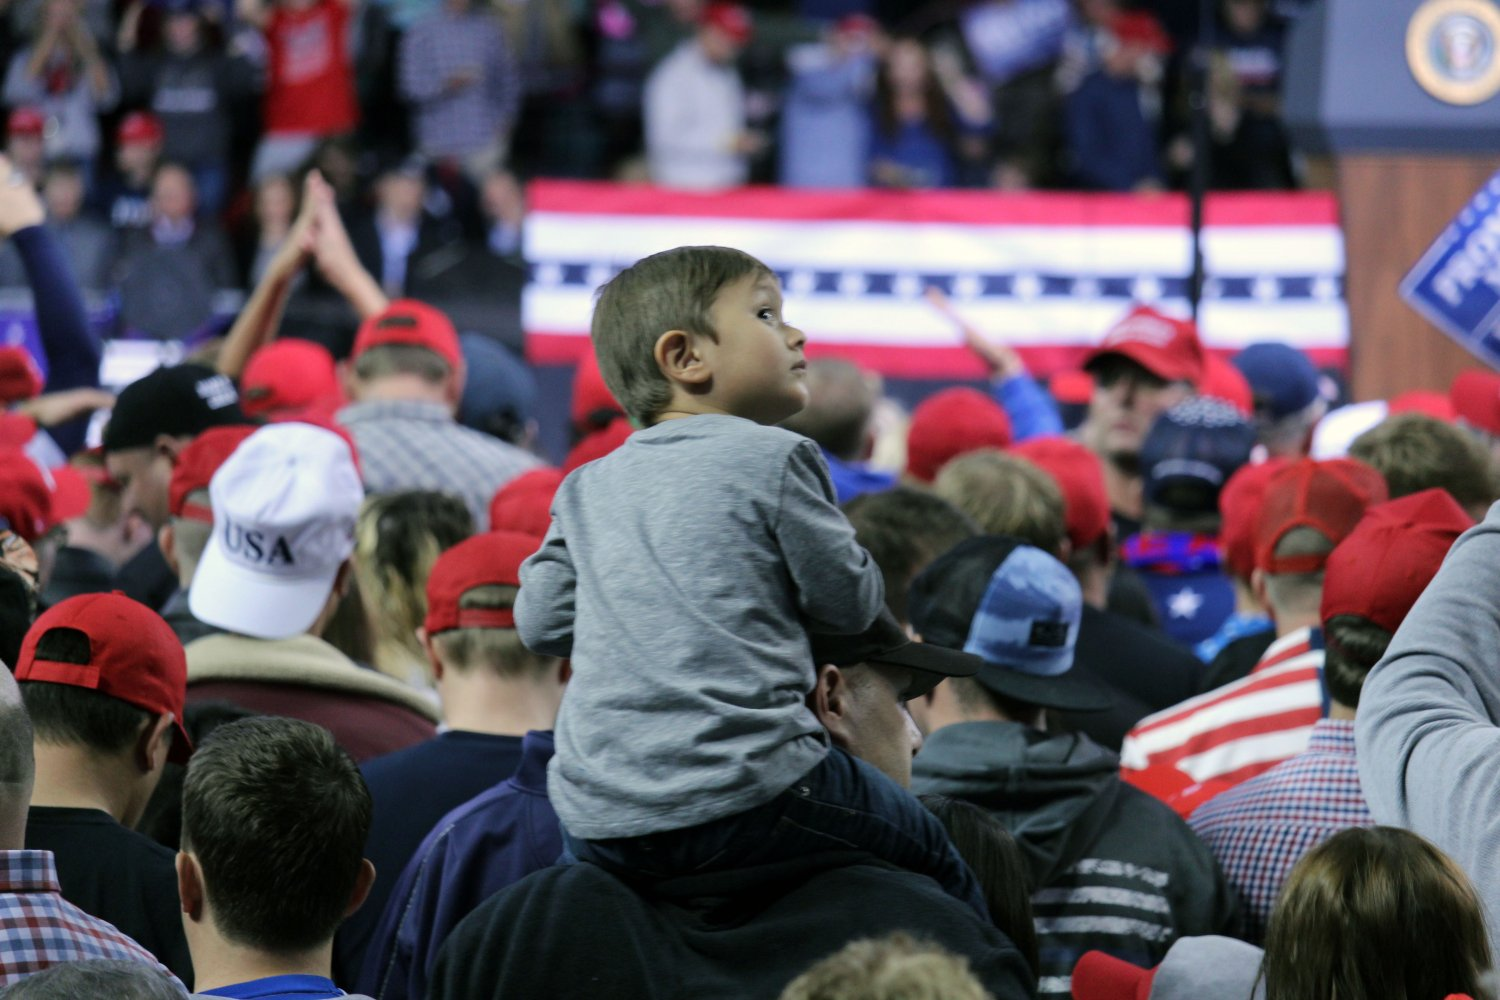 A little boy looks back as he sits on his father's shoulders at a rally for Donald Trump on Oct. 6 in Topeka, Kansas. The rally brought in a crwod of nearly 11 thousand people in support of Trump's 2020 campaign for president.